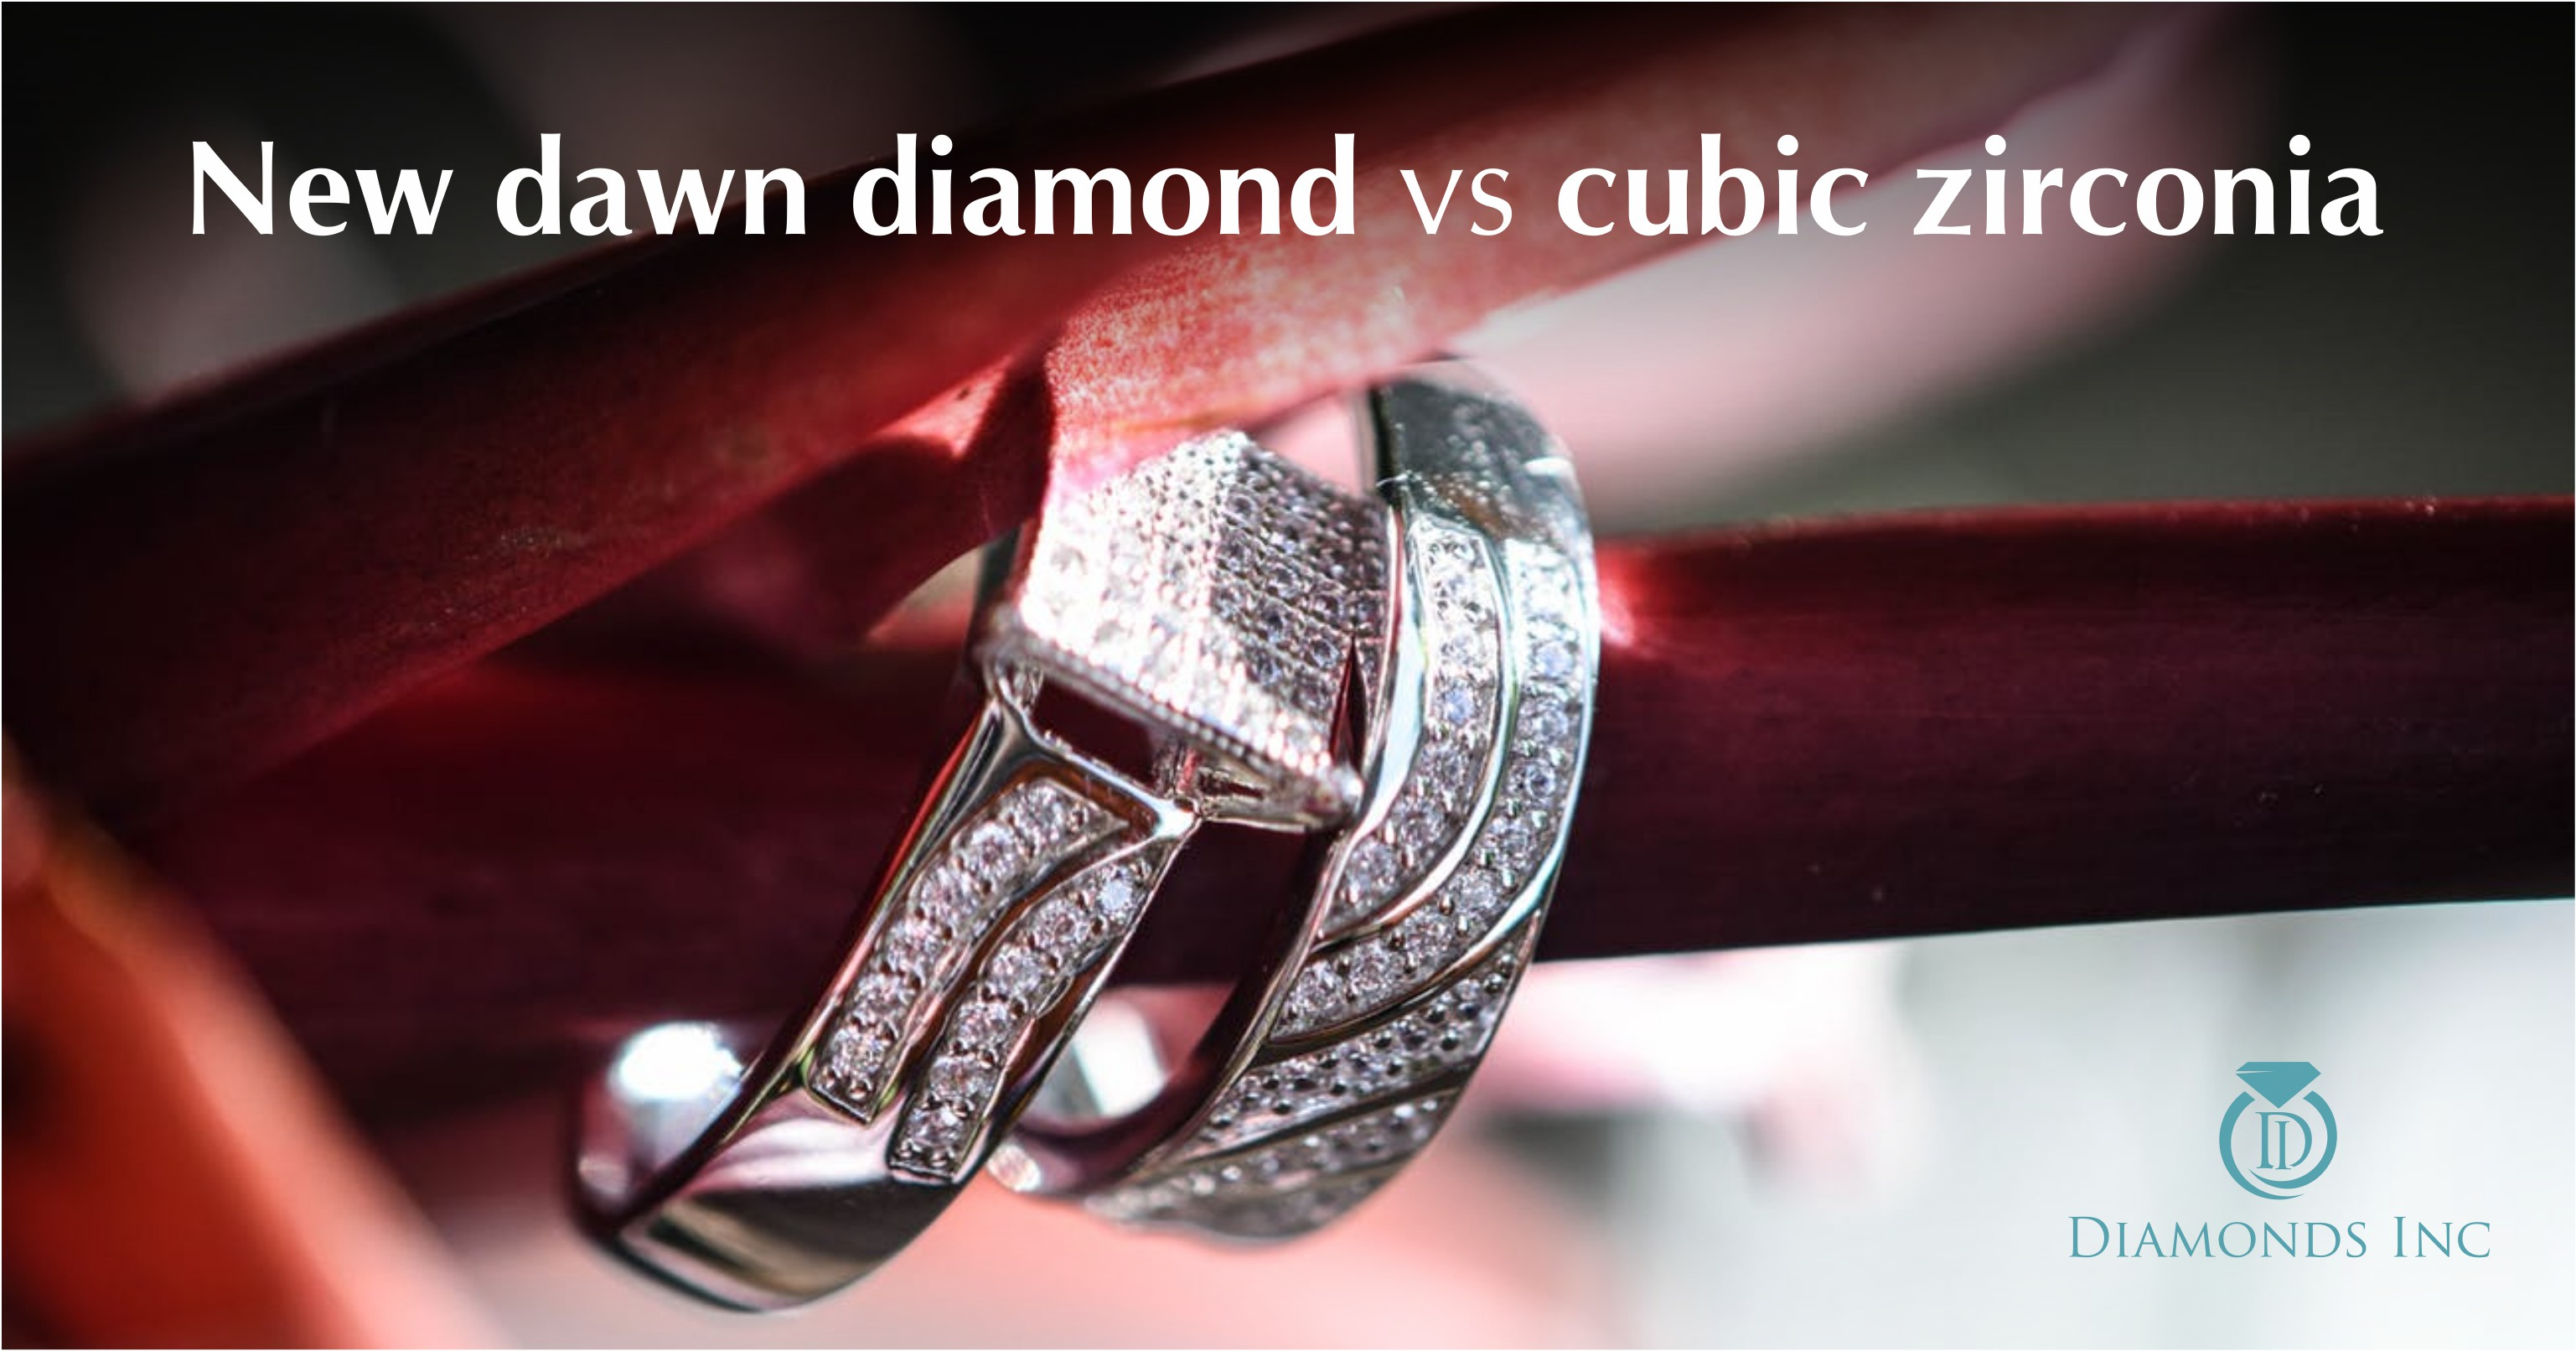 New Dawn Diamonds Vs Cubic Zirconia